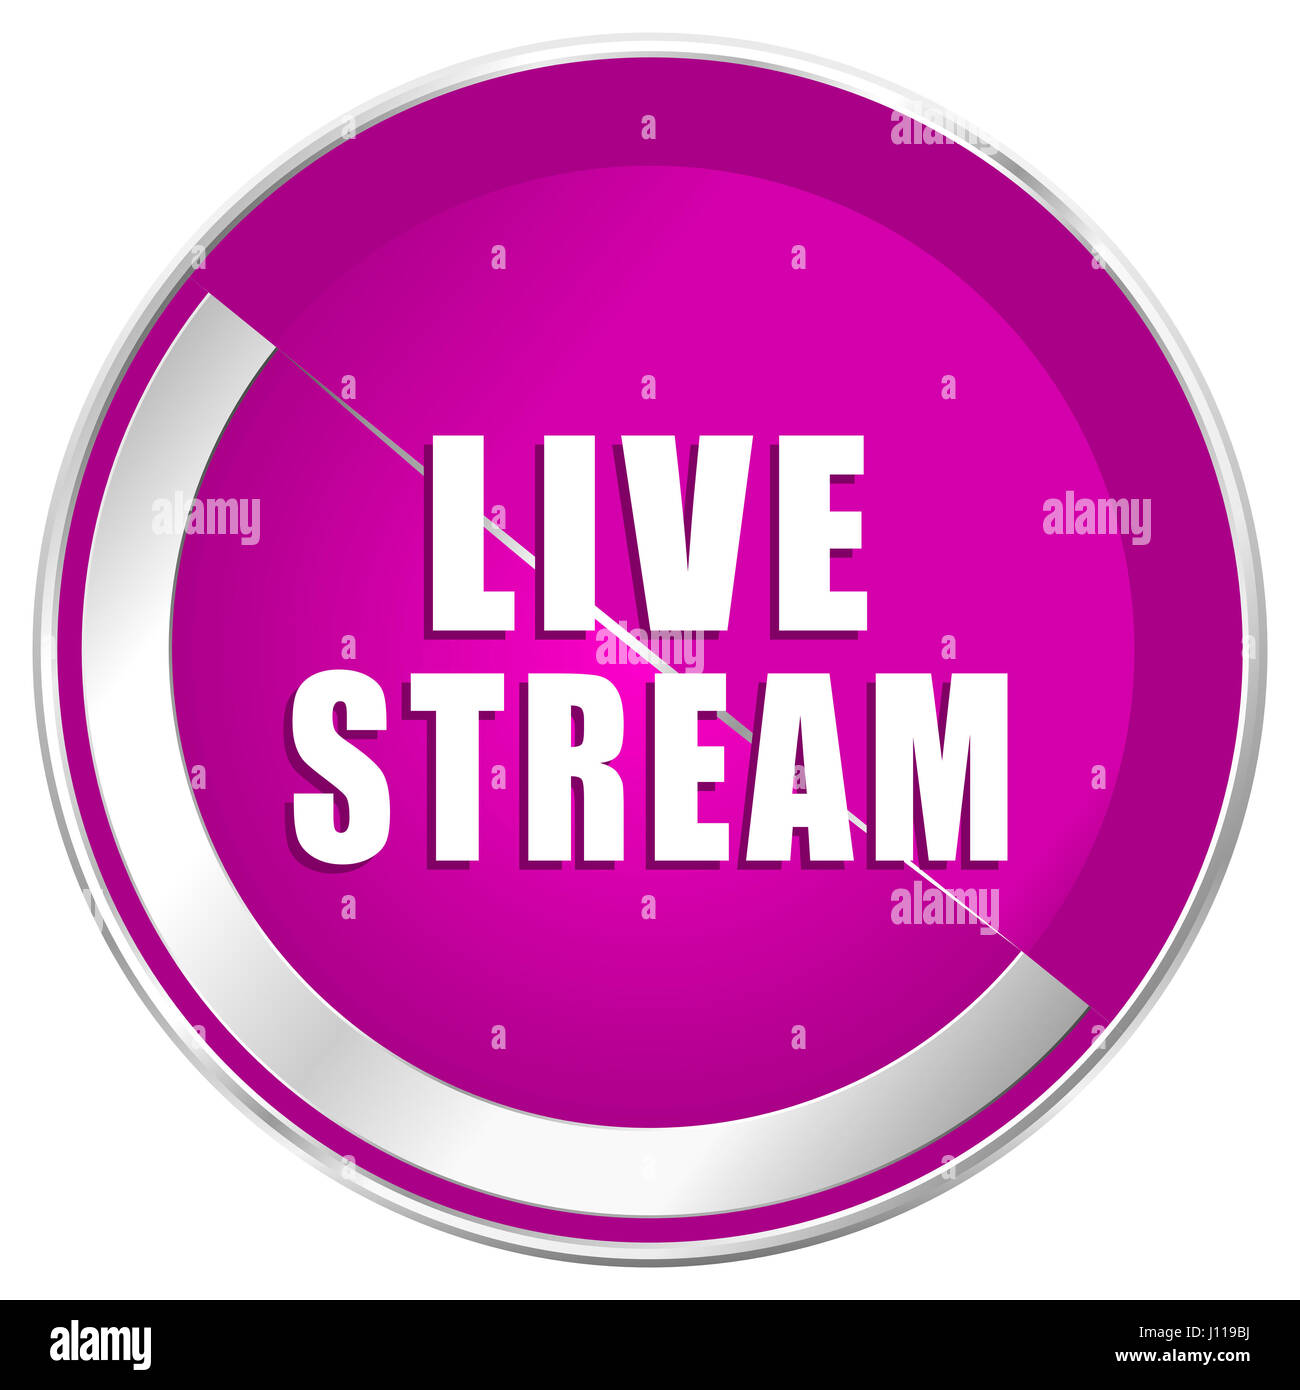 Live stream web design violet silver metallic border internet icon. - Stock Image